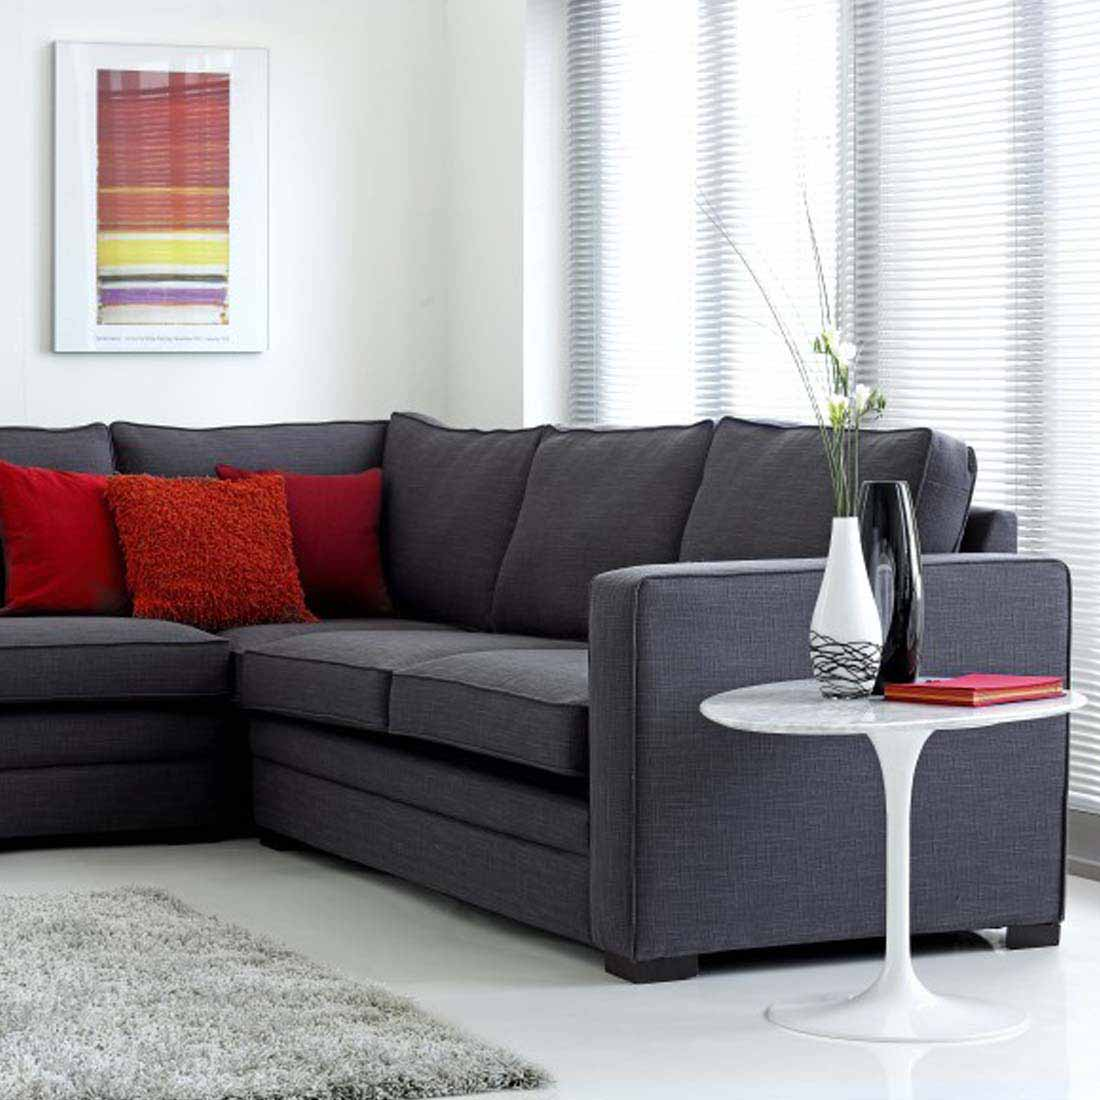 Hotel Corner Sofa - Get An Online Quote Today - Forest Contract